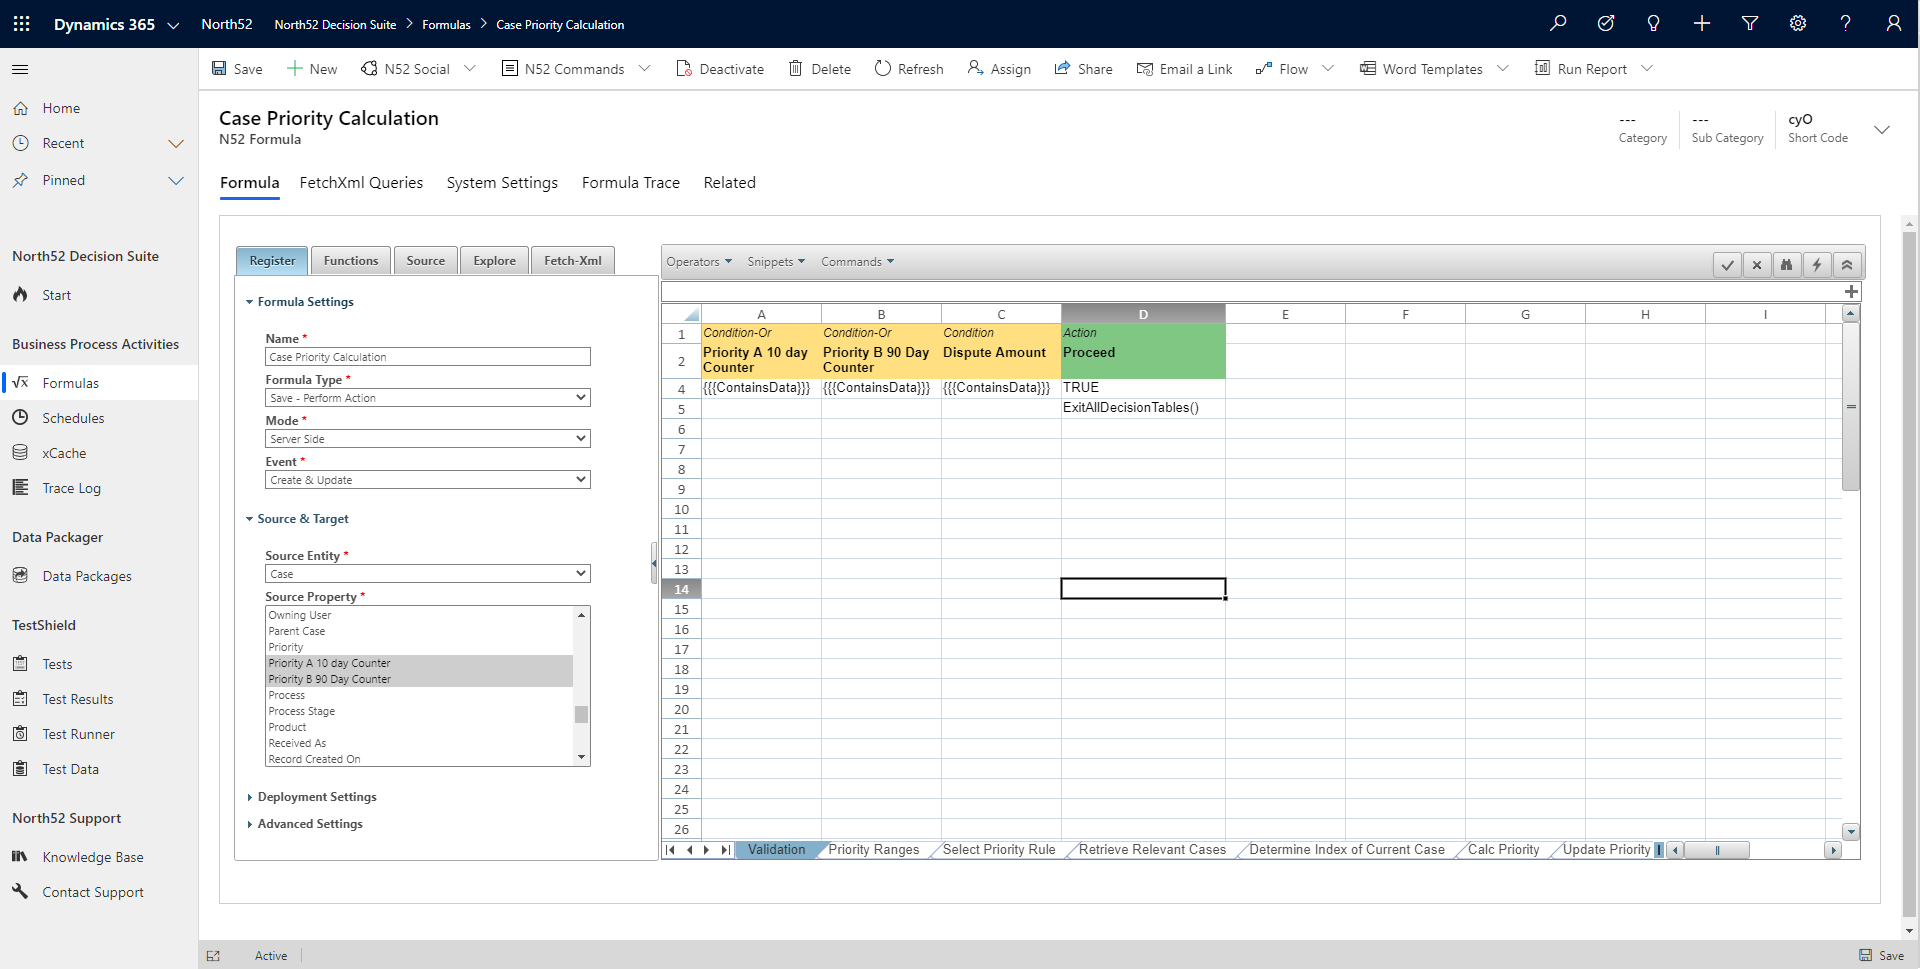 Validation Decision Table - North52 Business Rules Engine for Dynamics 365